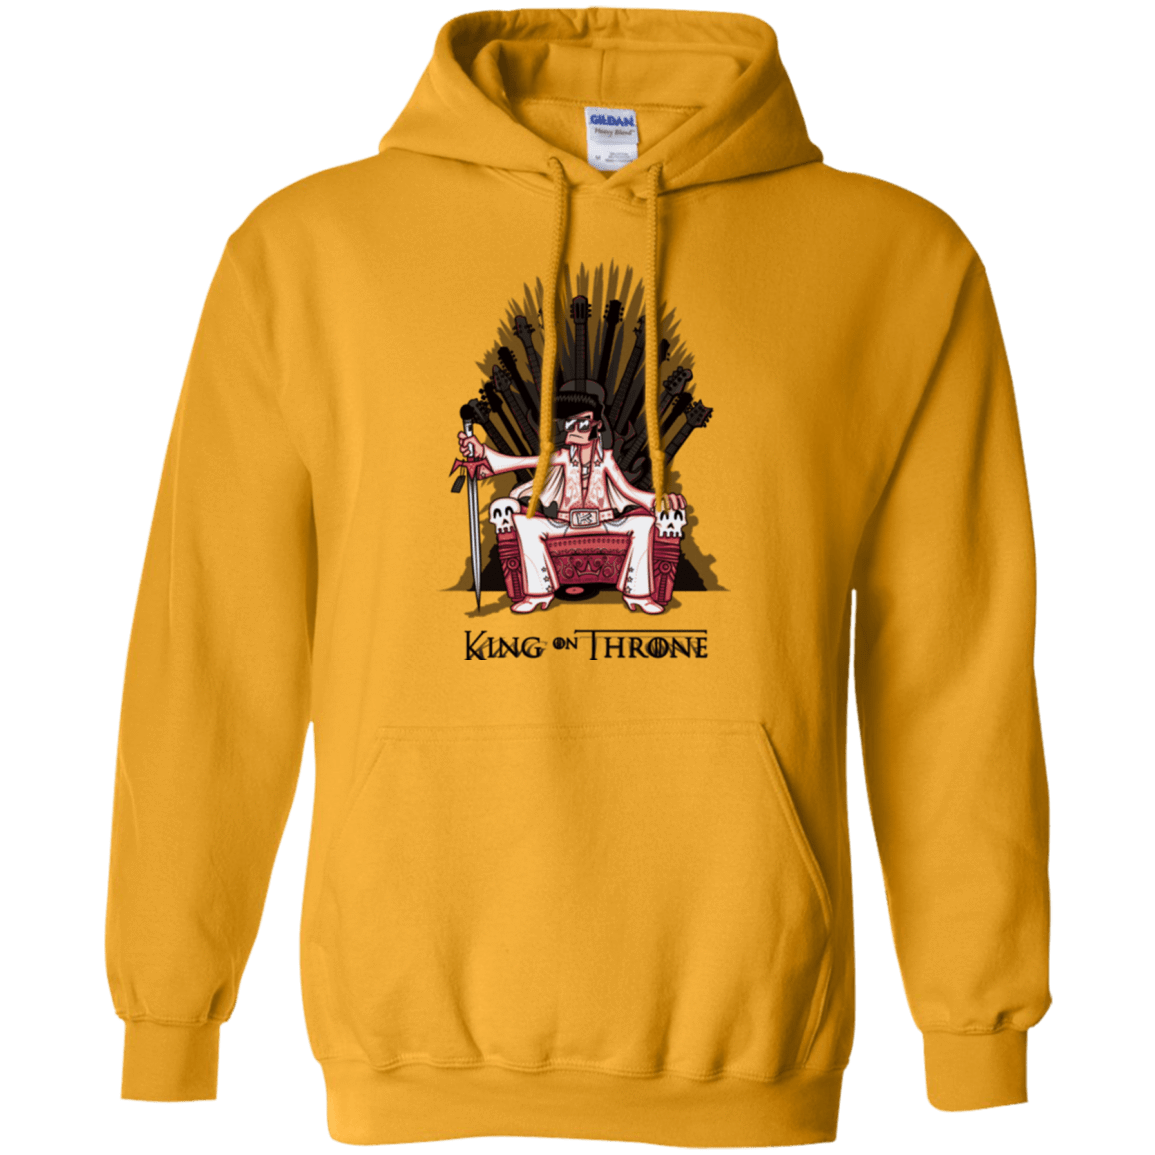 Sweatshirts Gold / Small King on Throne Pullover Hoodie